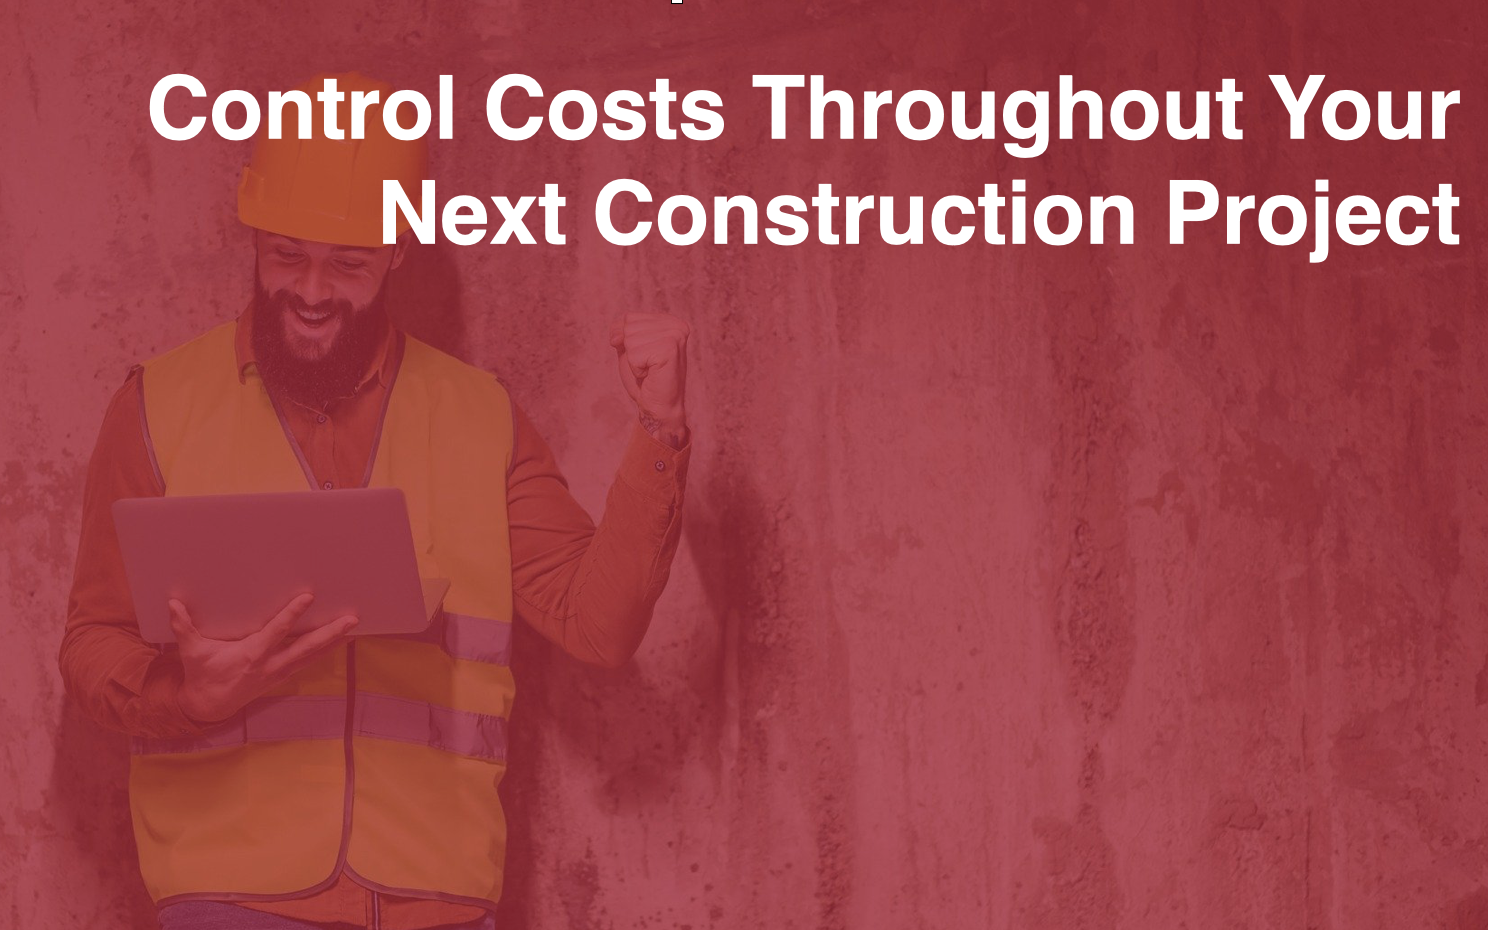 Control Costs Throughout Your Next Construction Project